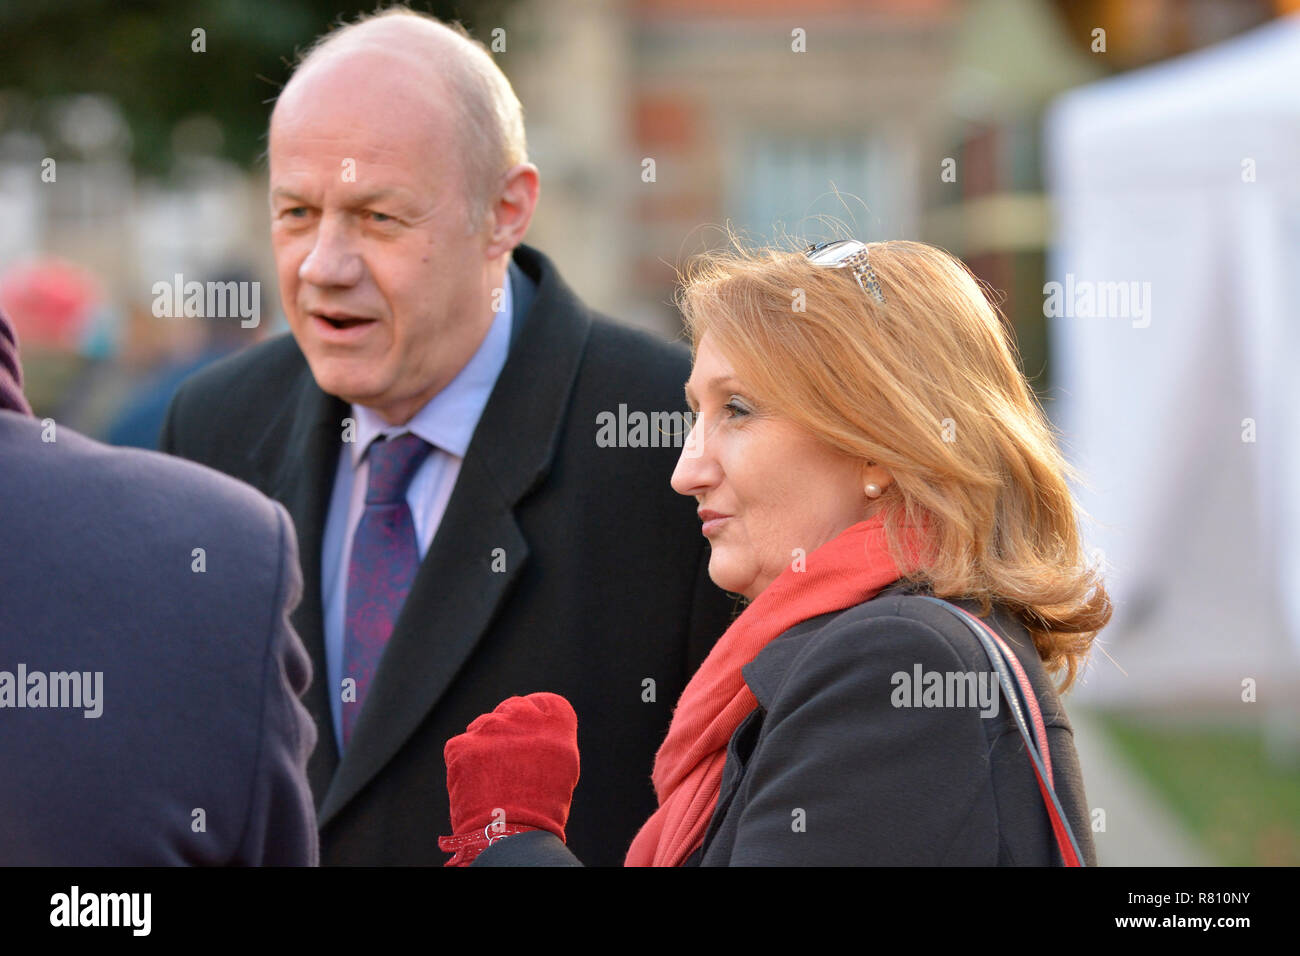 Damian Green MP (Con: Ashford) with Suzanne Evans (former deputy chair of UKIP) on College Green, Westminster, December 2018 - Stock Image